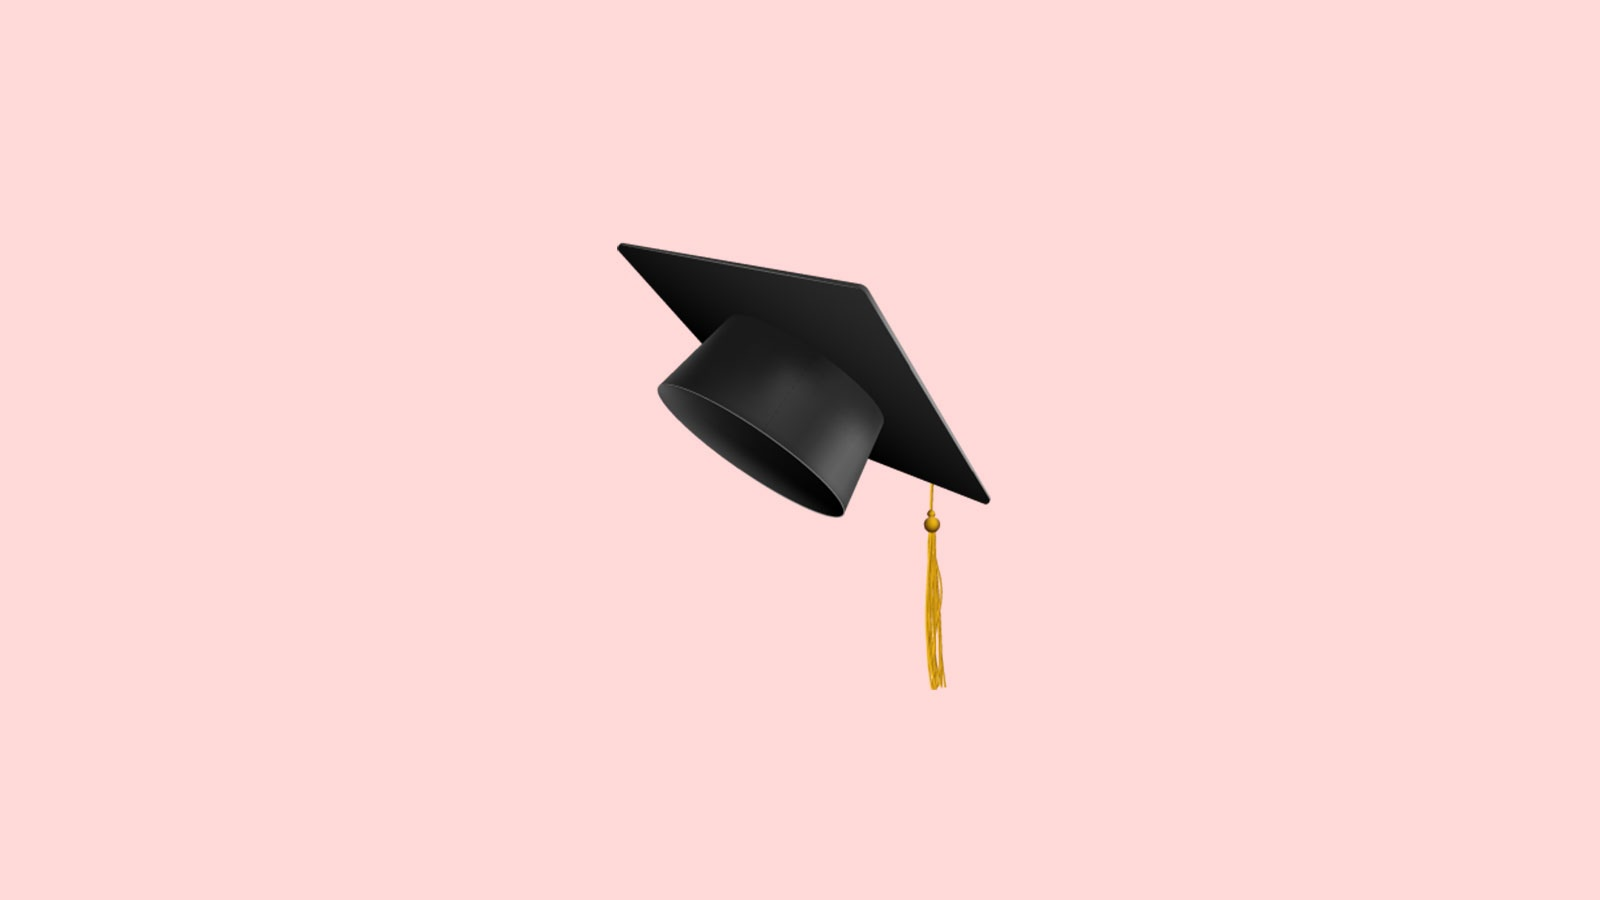 Graduation hat on a pink background